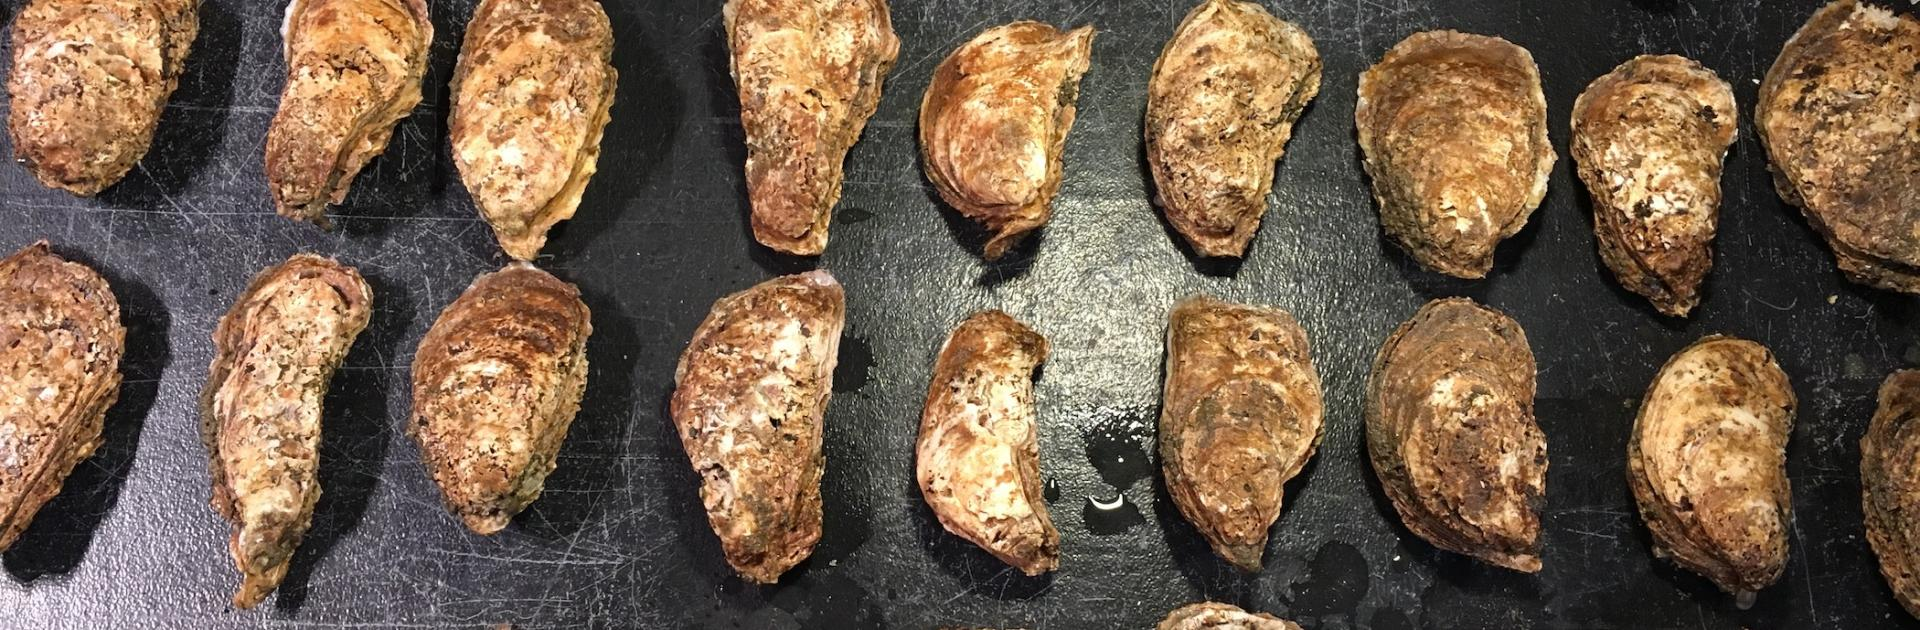 oysters on spawning table